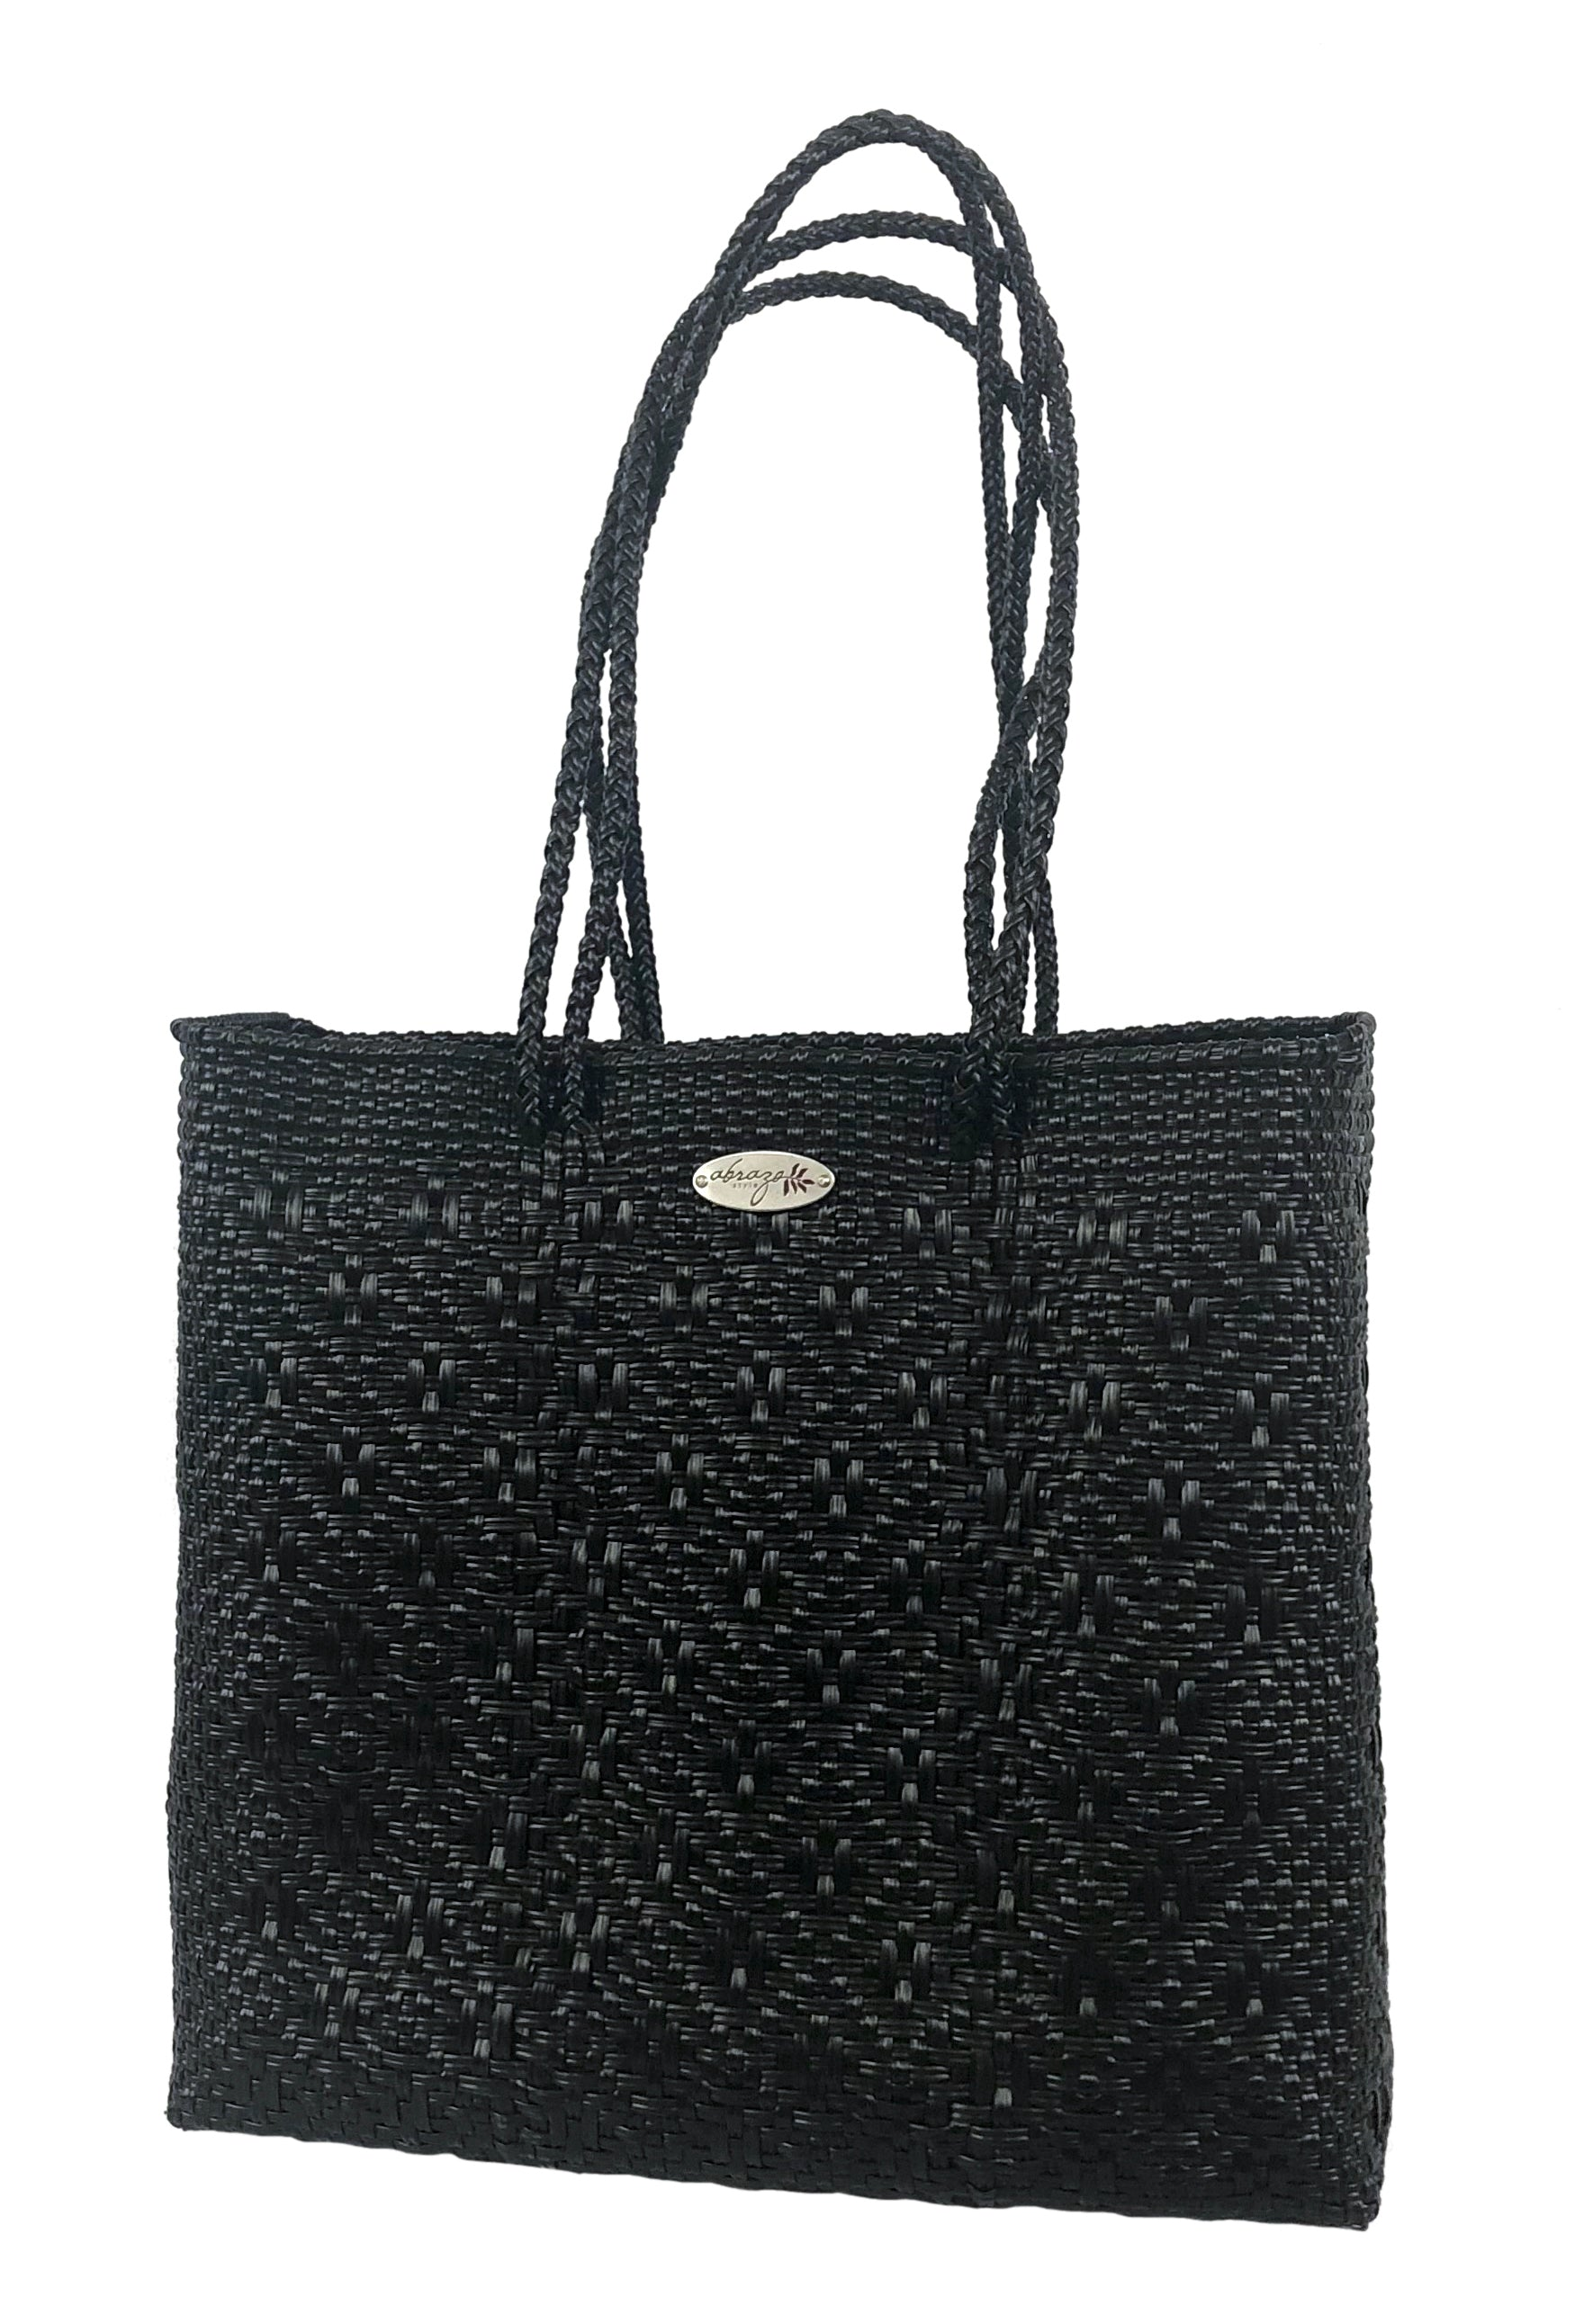 Providence Tote